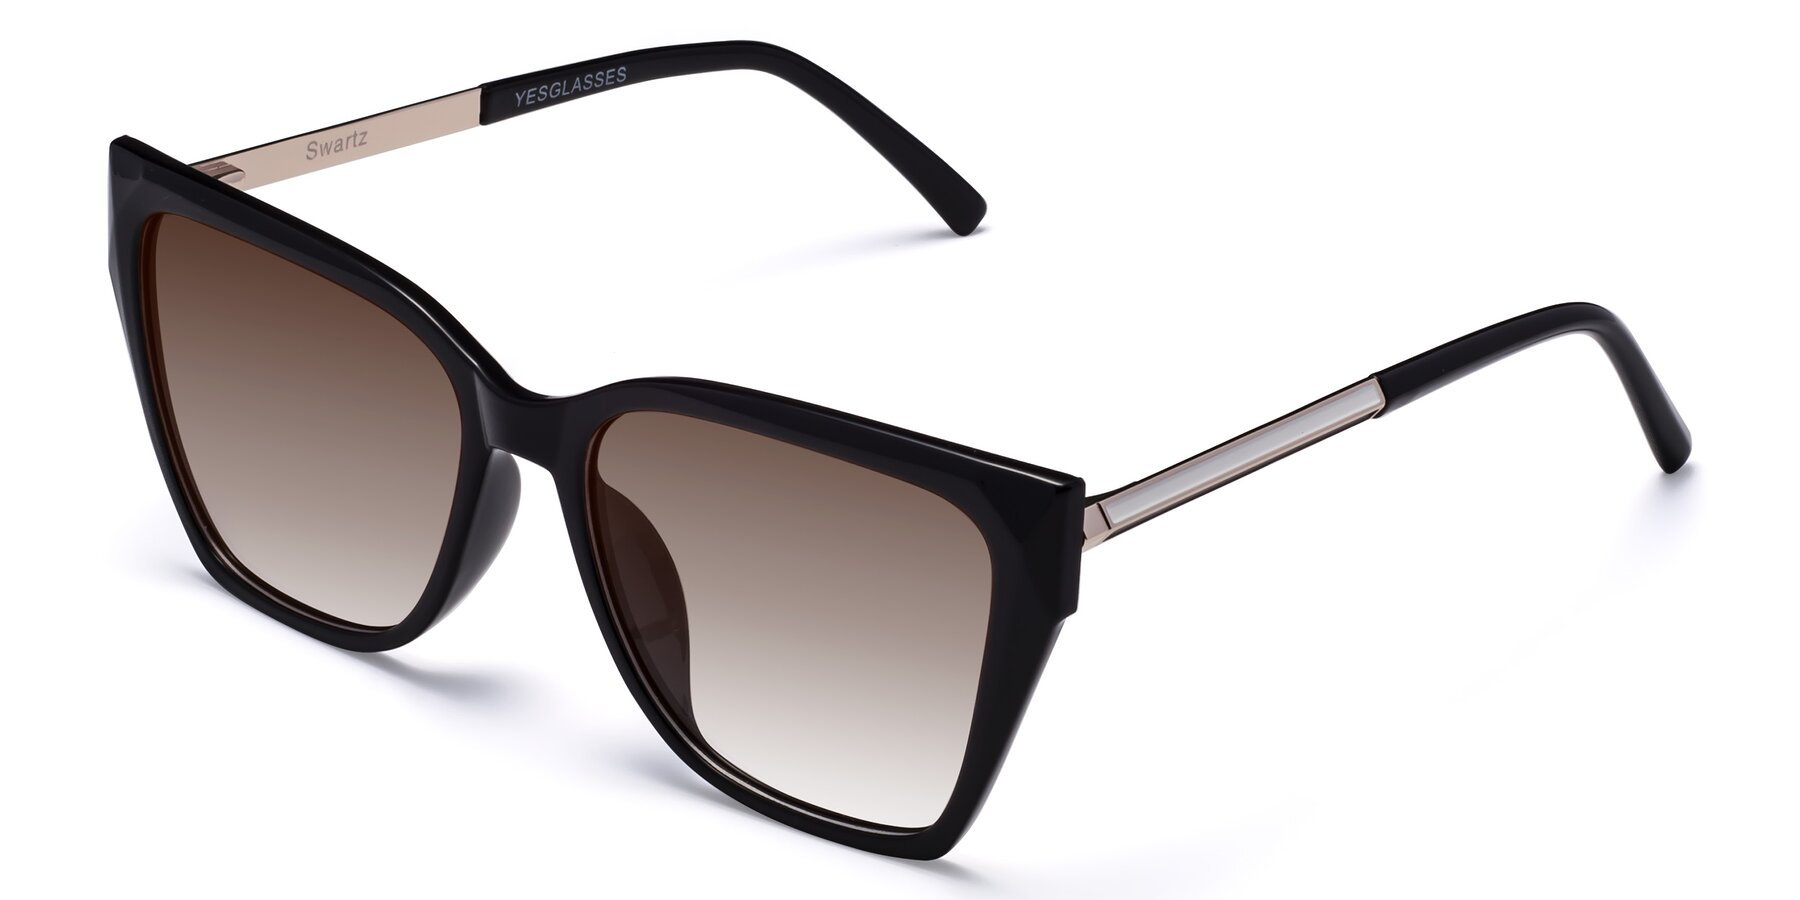 Angle of Swartz in Black with Brown Gradient Lenses